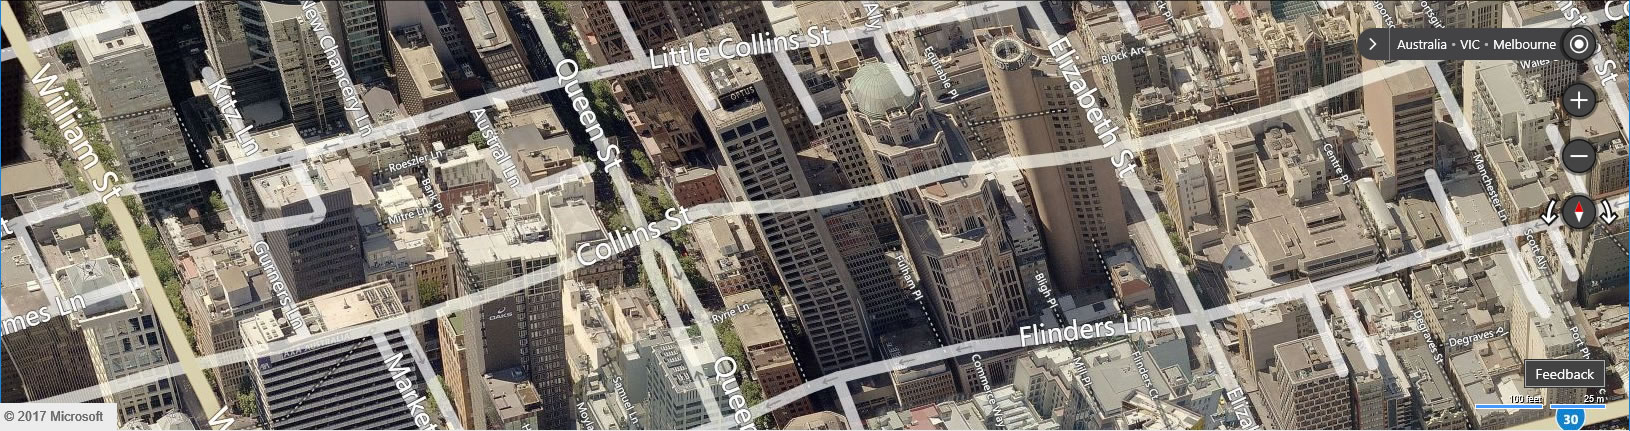 Melbourne Aerial View on Bing Maps - Envision IT Bing Maps Reseller in Australia